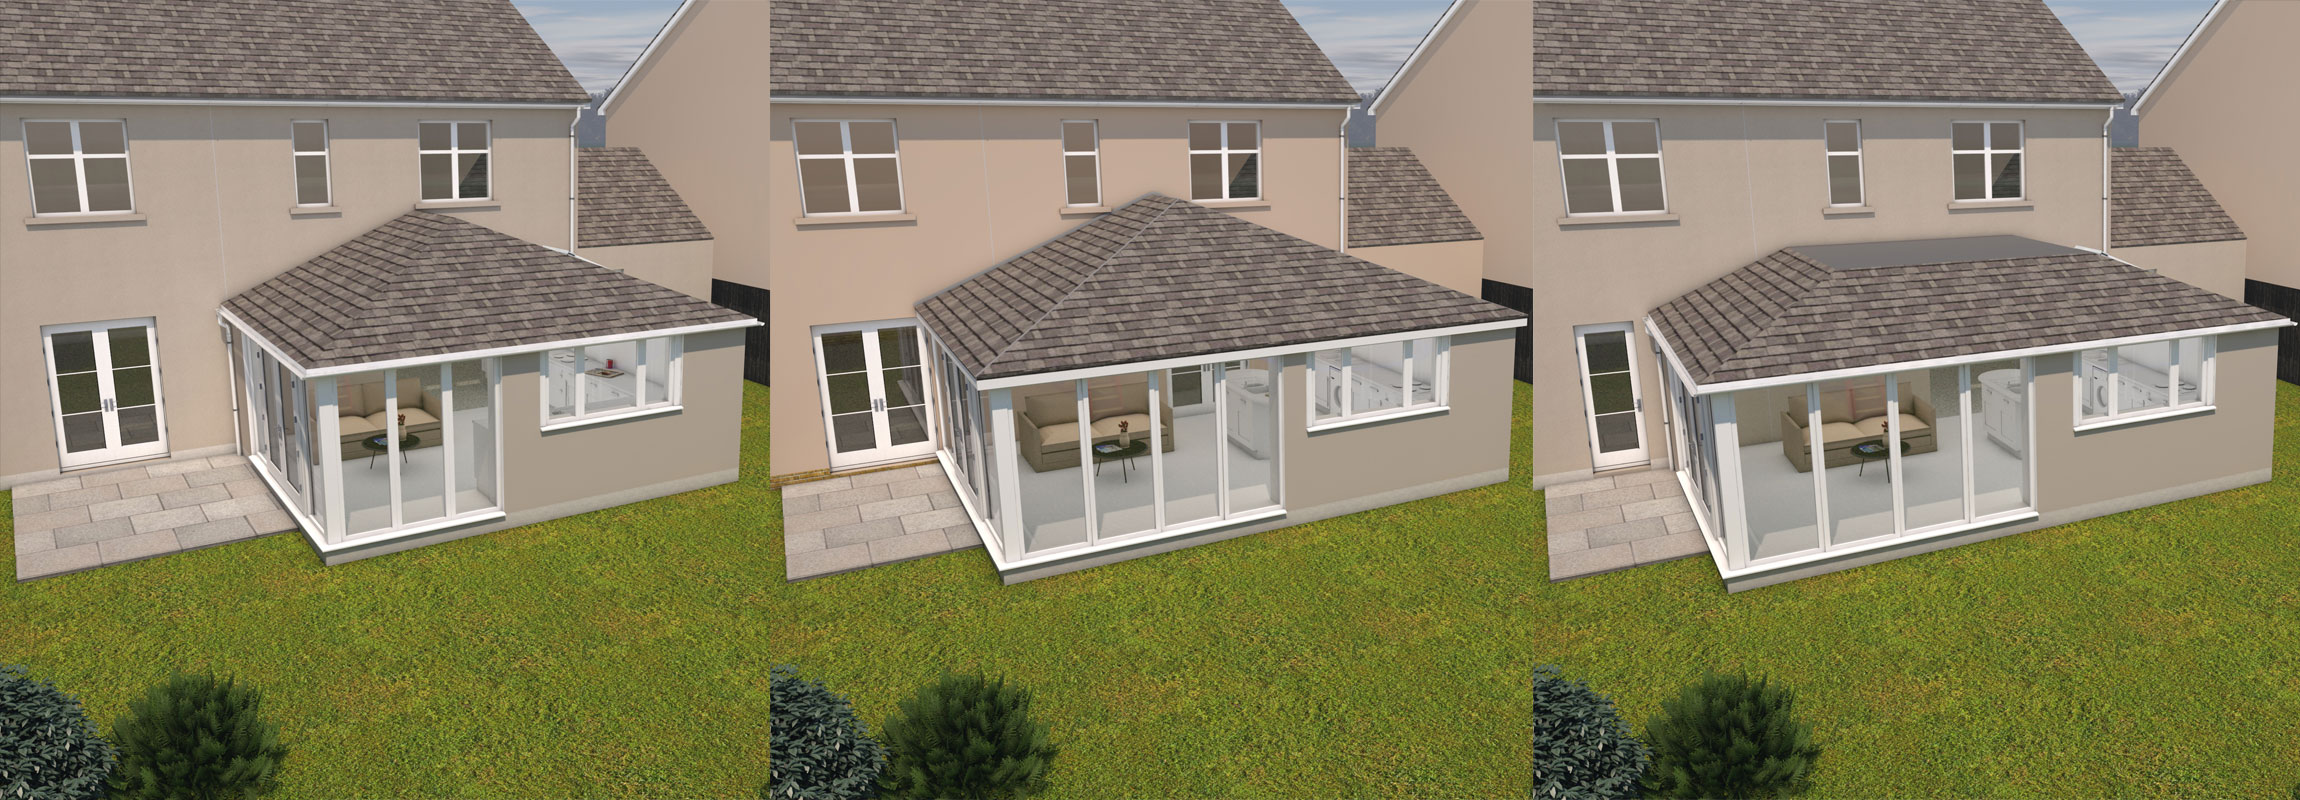 Thistle home extensions north east scotland free 3d for Home plans 3d designs